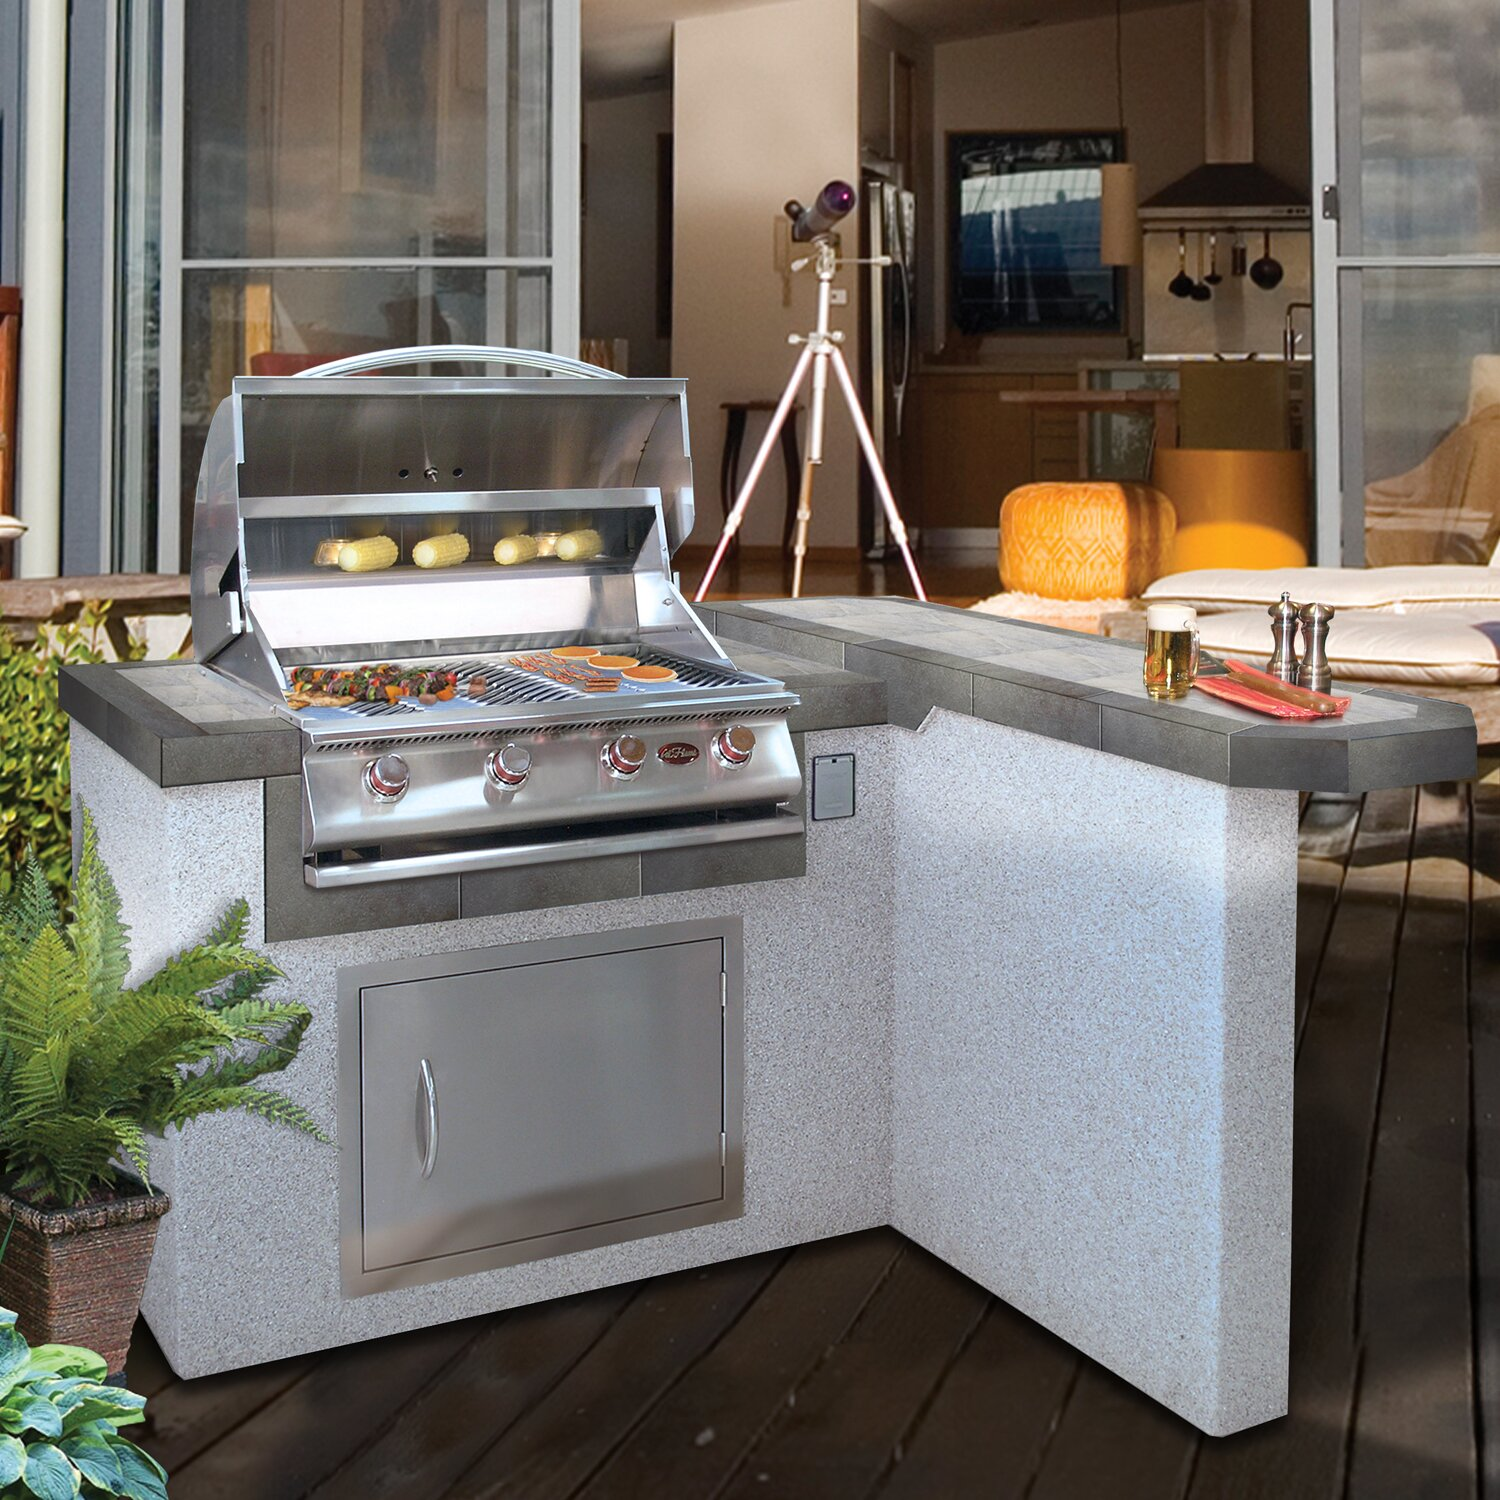 Outdoor Kitchen Island: CalFlame 4-Burner Propane Gas Grill With Cabinet